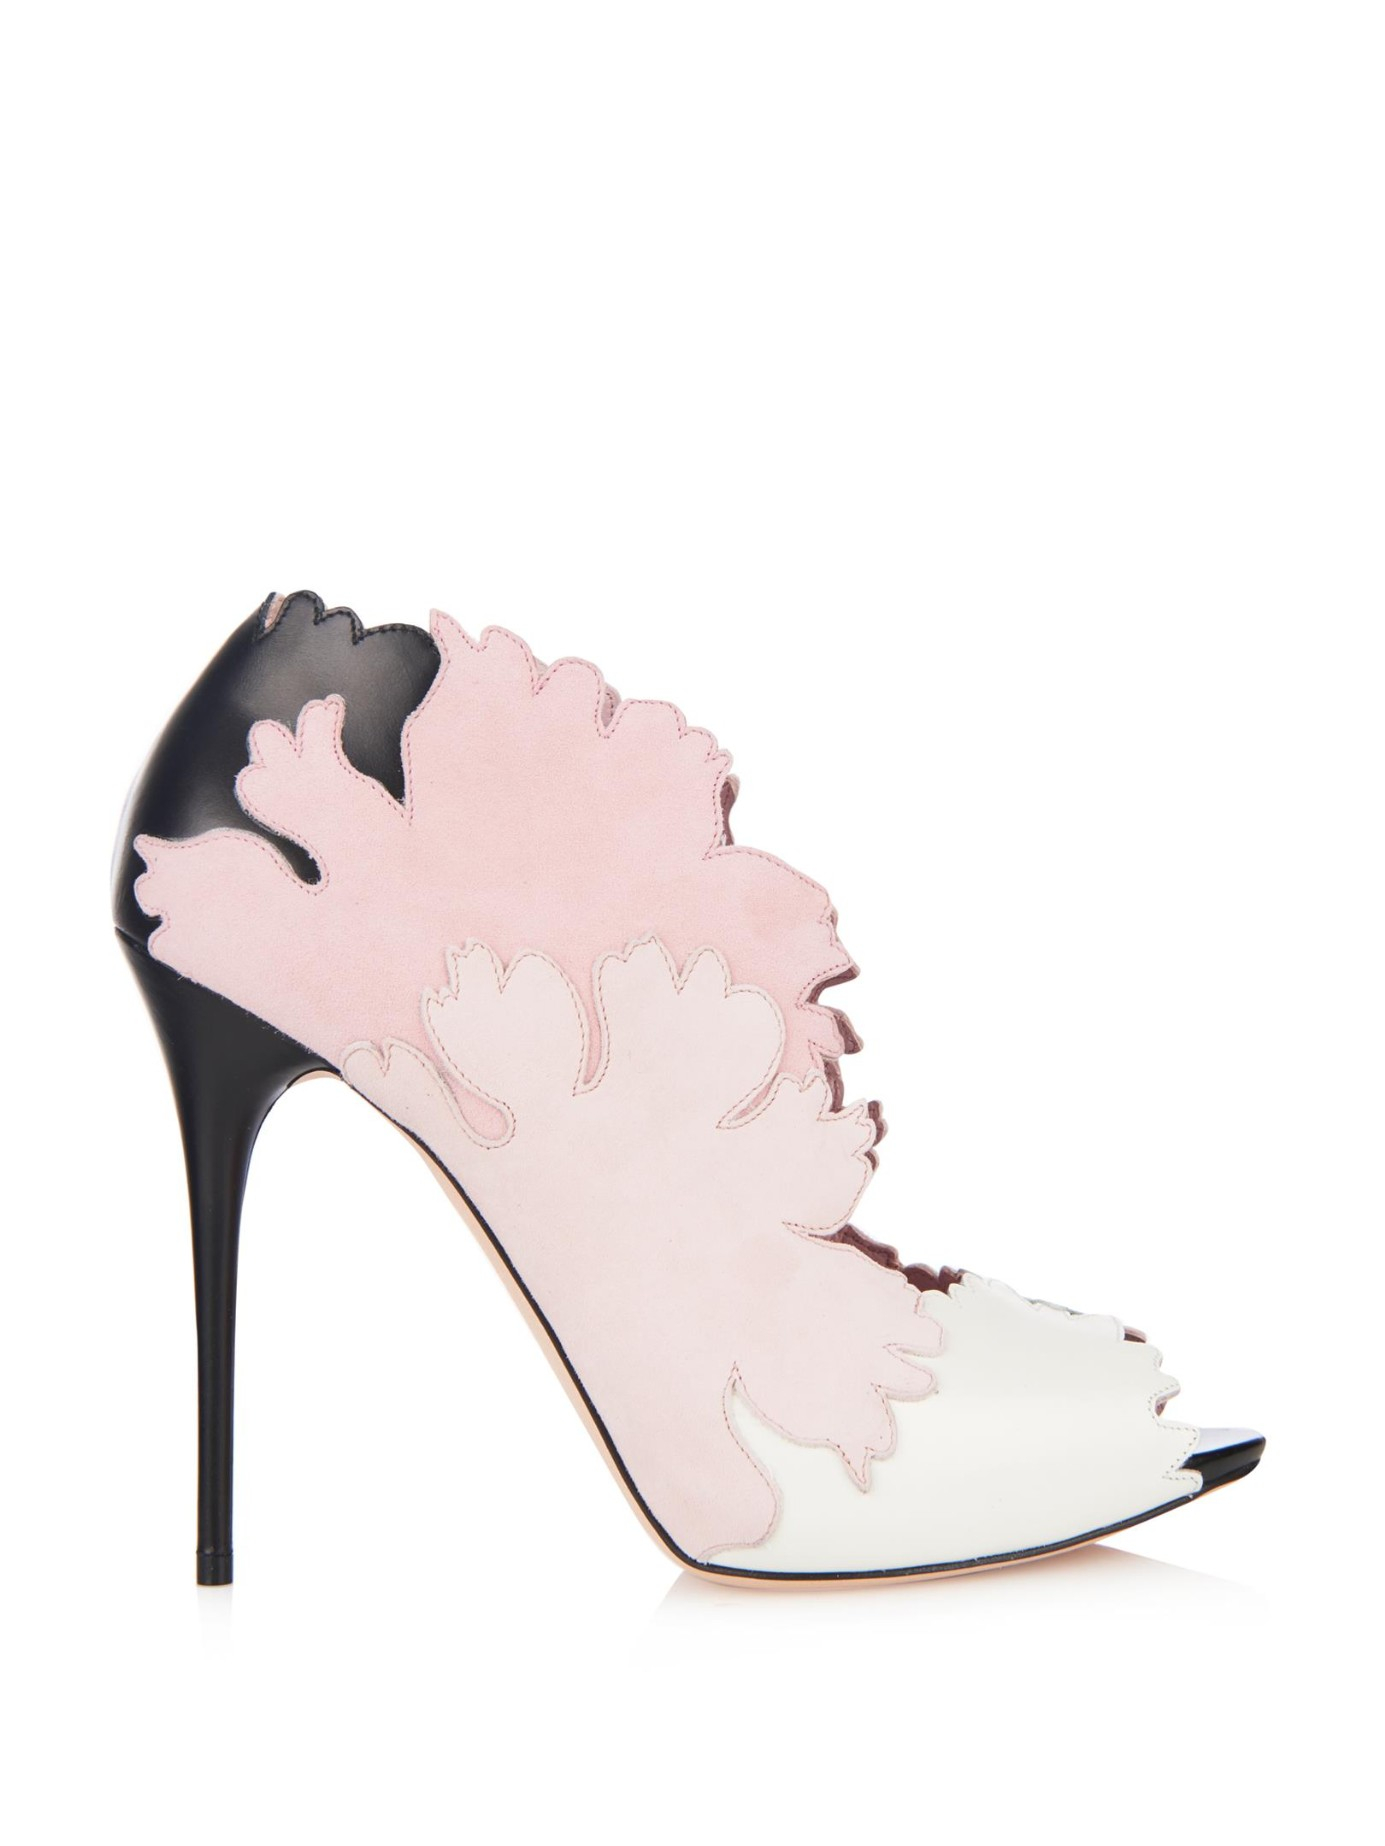 Lyst Alexander Mcqueen Kimono Flower Suede And Leather Shoes In Pink